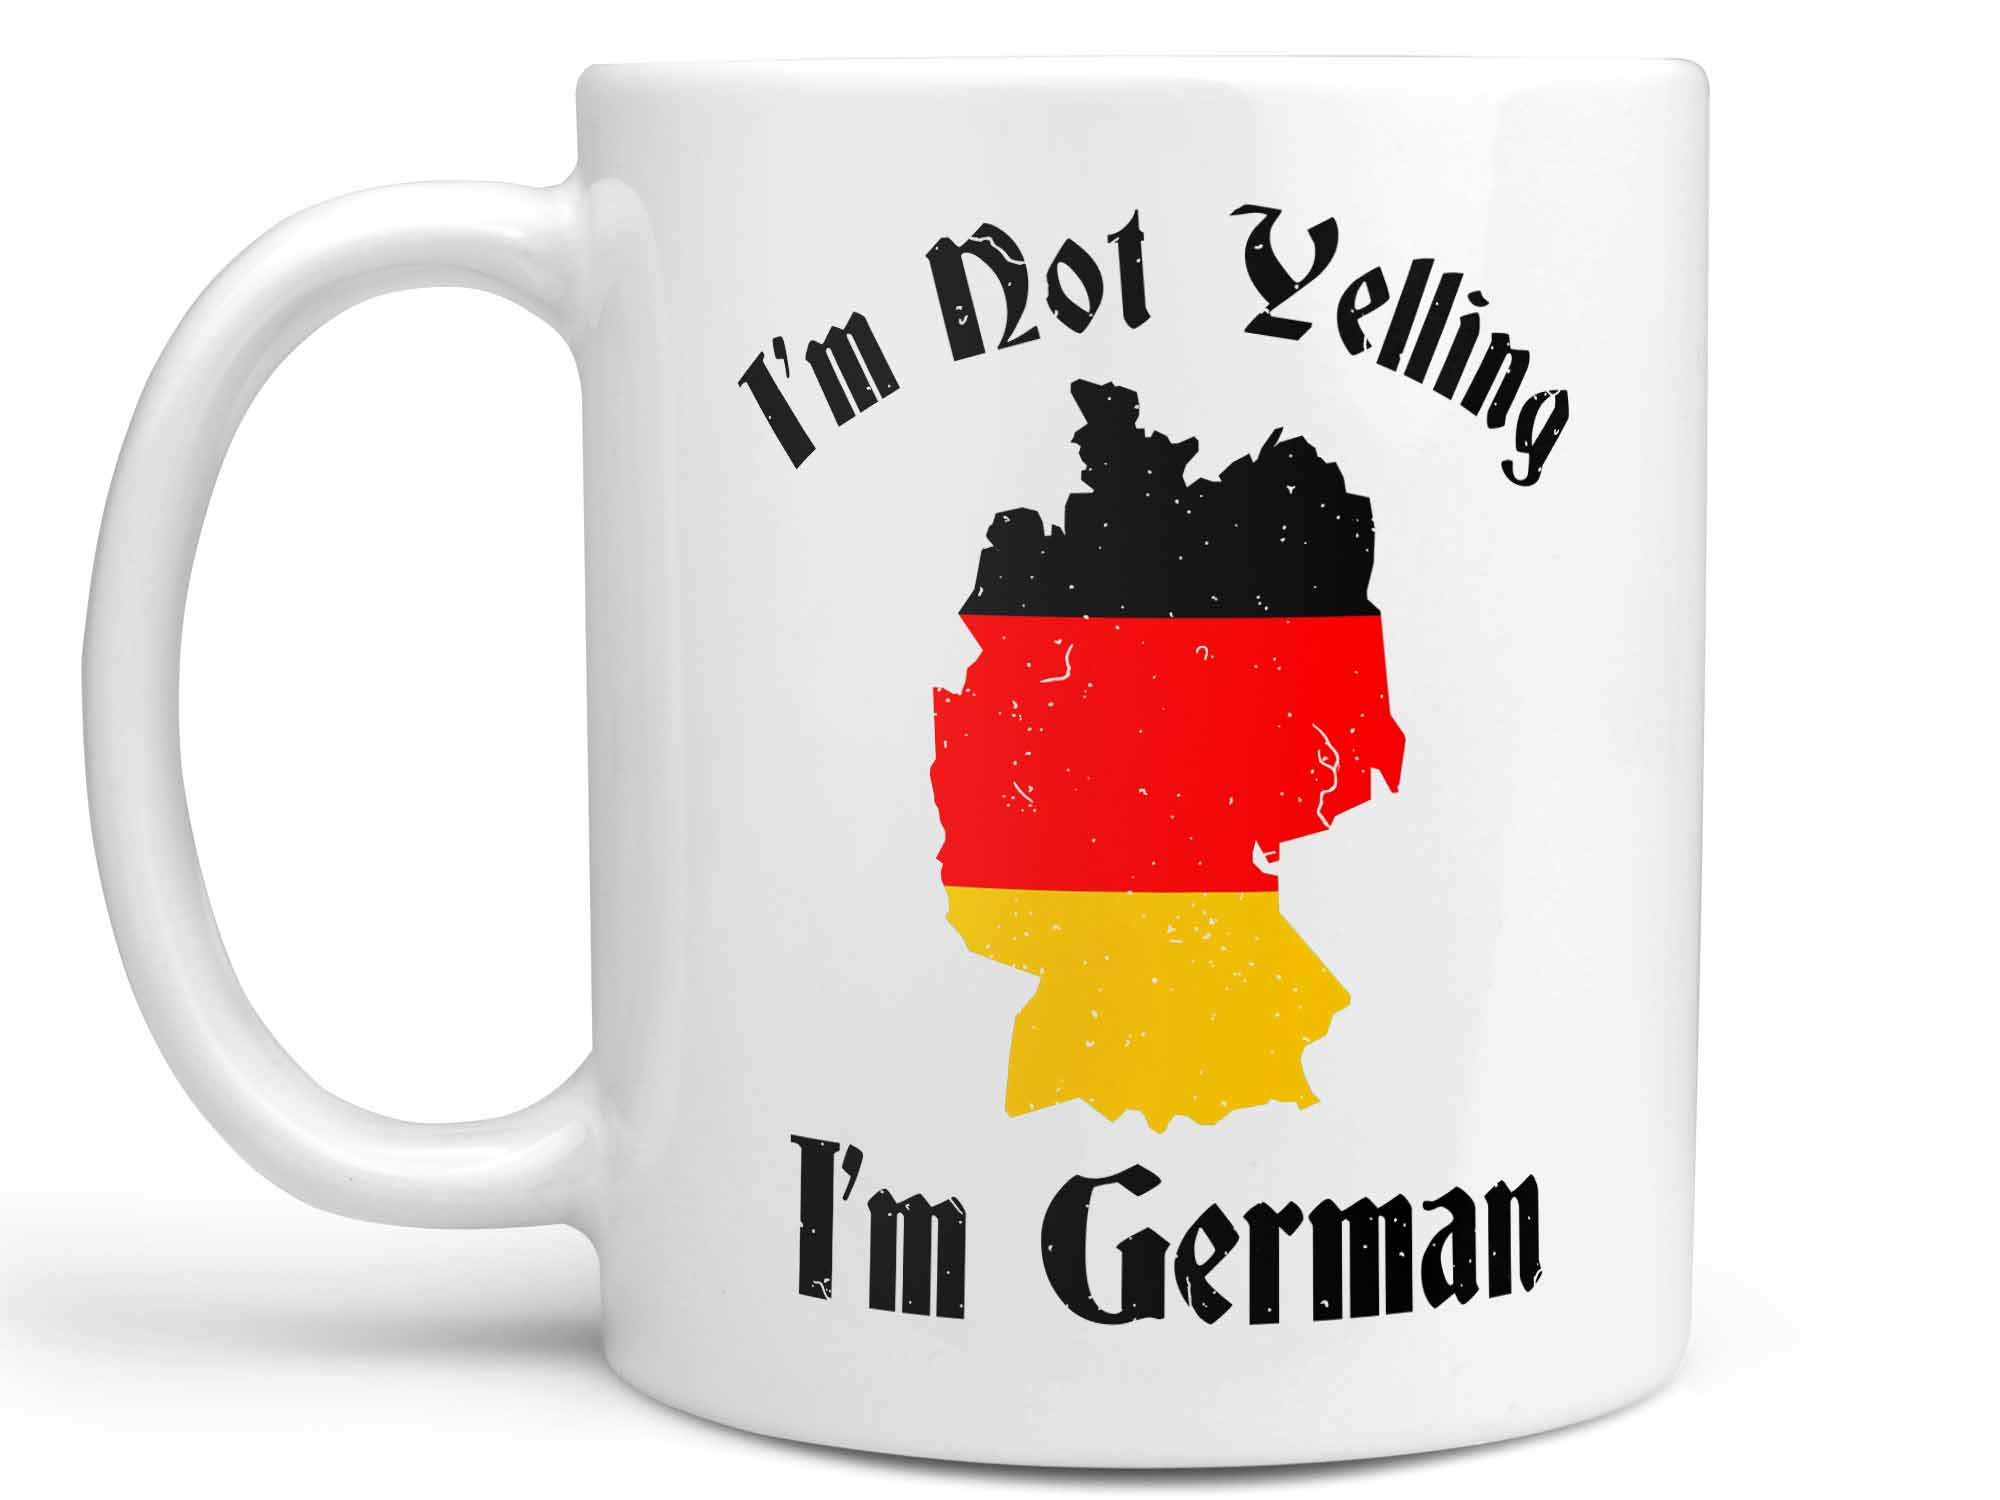 I'm Not Yelling I'm German Coffee Mug,Coffee Mugs Never Lie,Coffee Mug